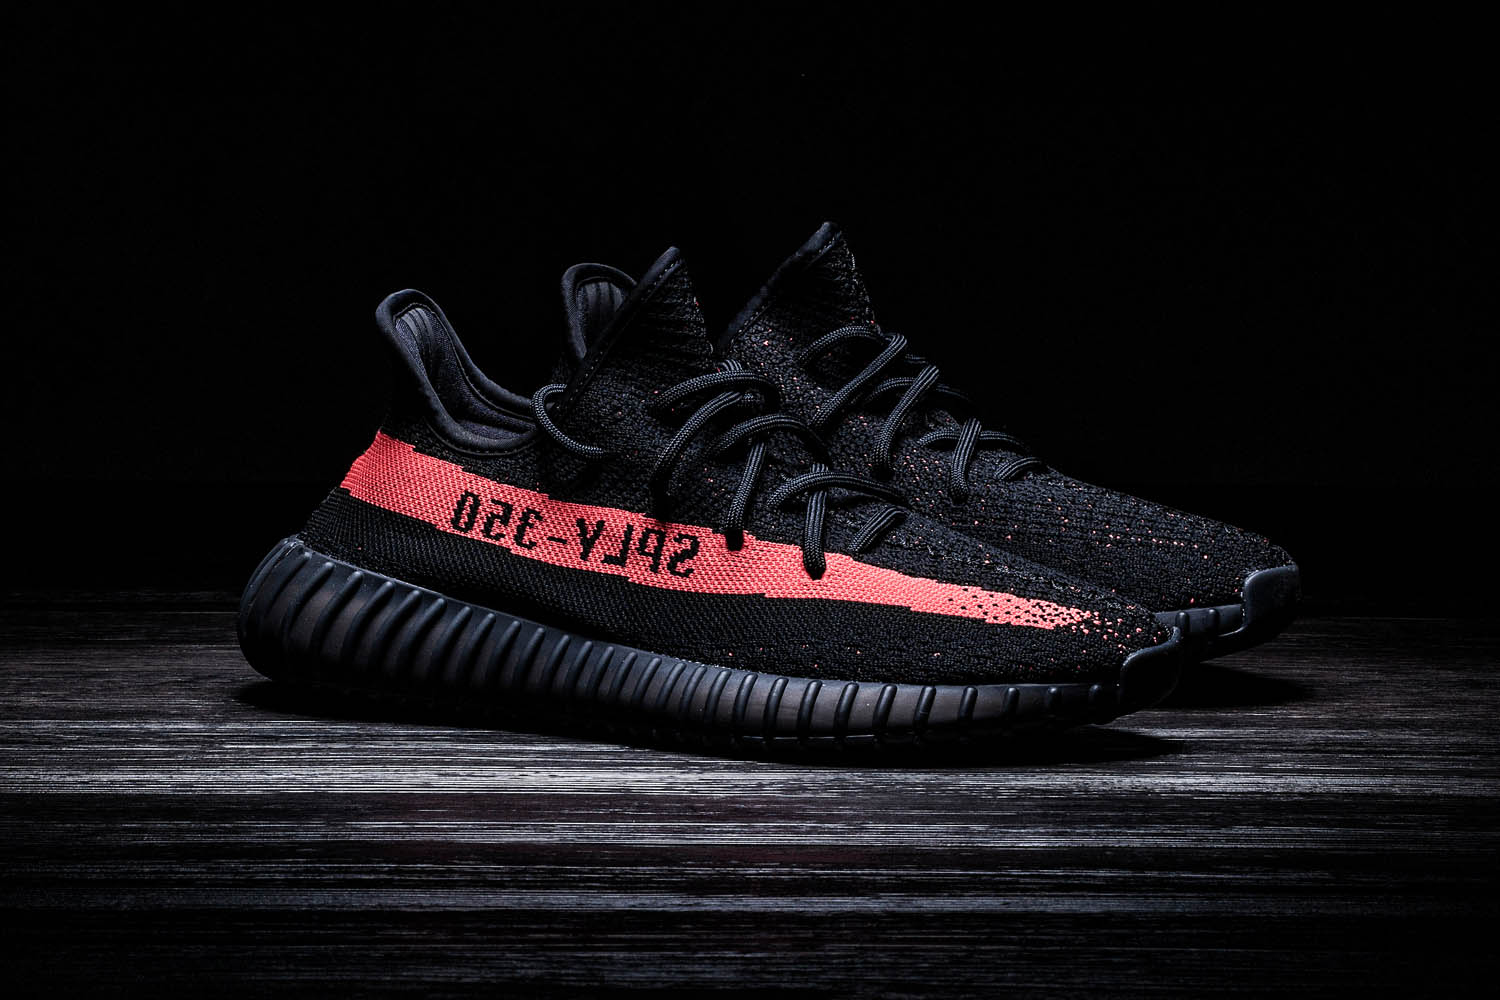 Yeezy Boost 350 V2 Upcoming Releases